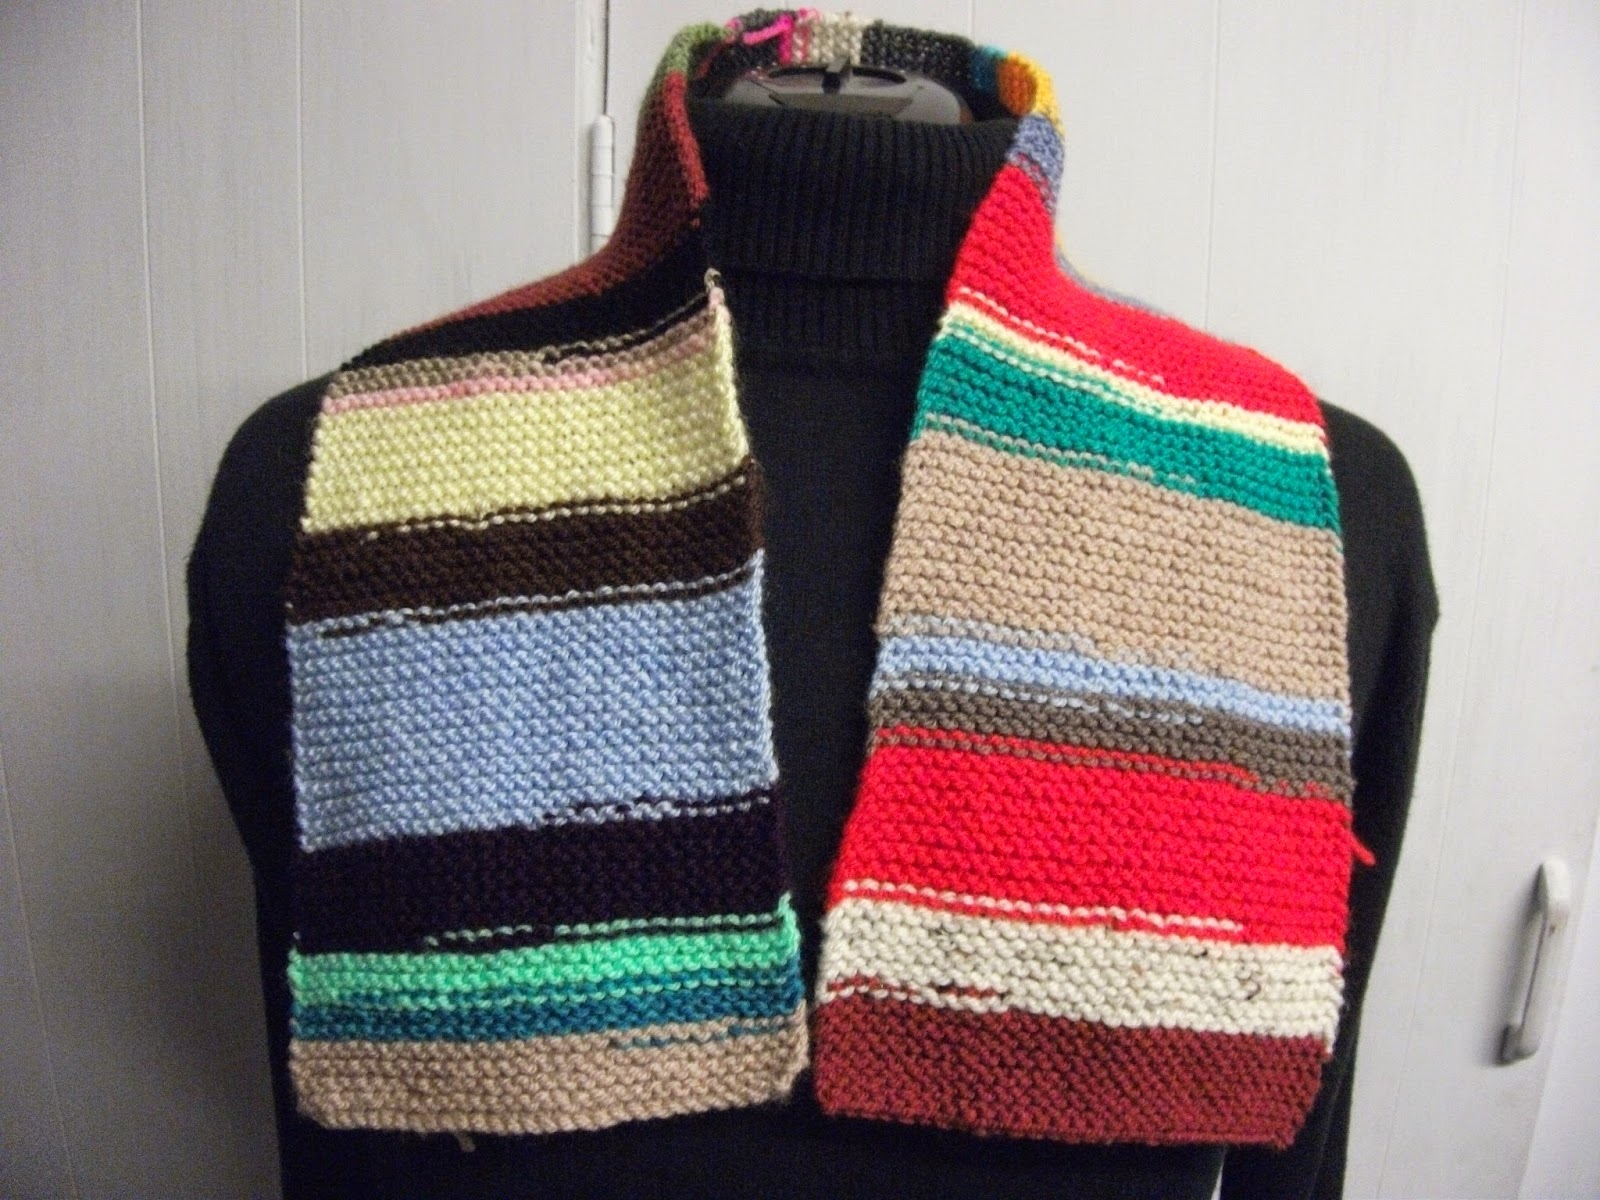 Paulineknit ~ Scarf Knitting Patterns: Reversible Colourful Shaggy ...